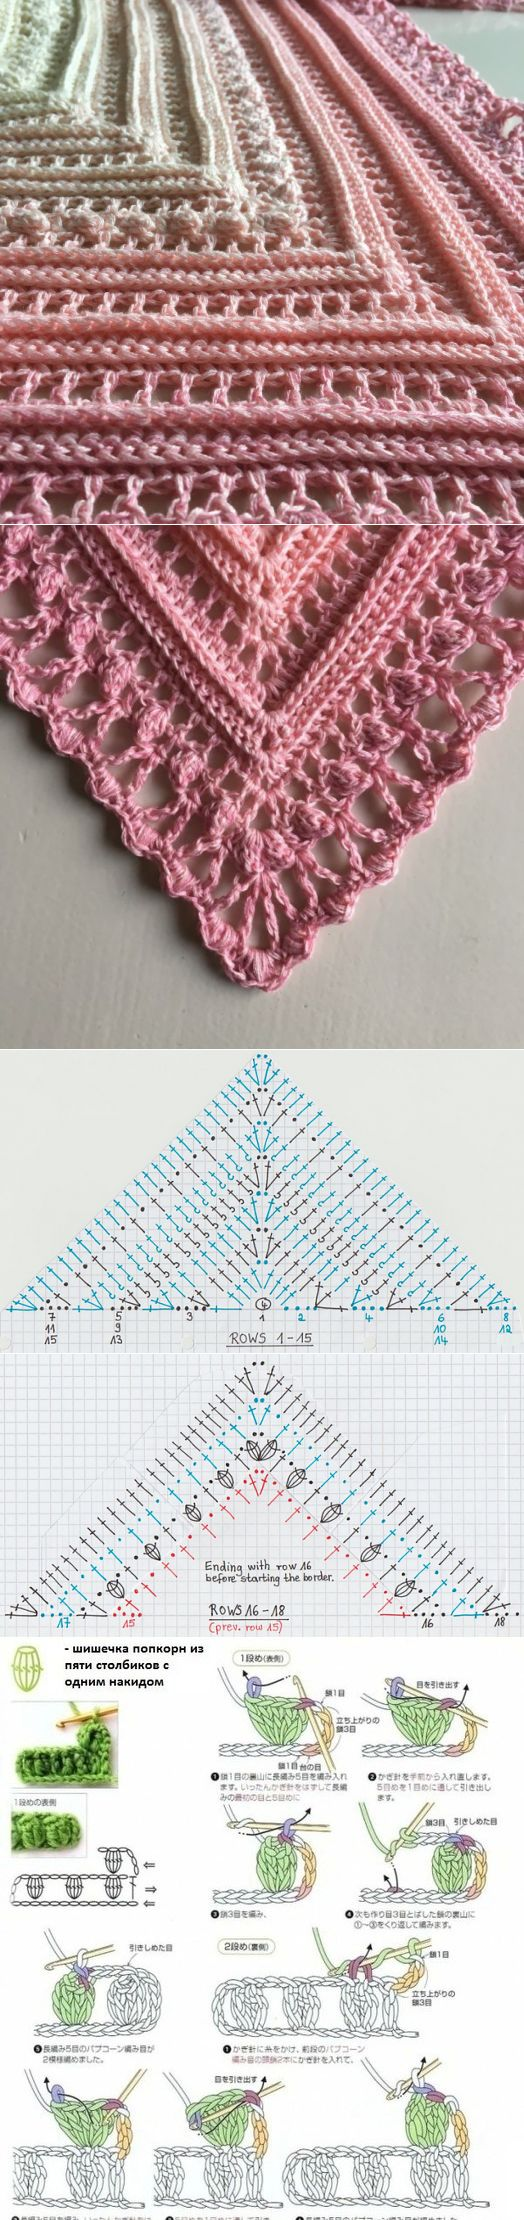 248 best TRICOTS images on Pinterest | Knits, Garter stitch and Knit ...